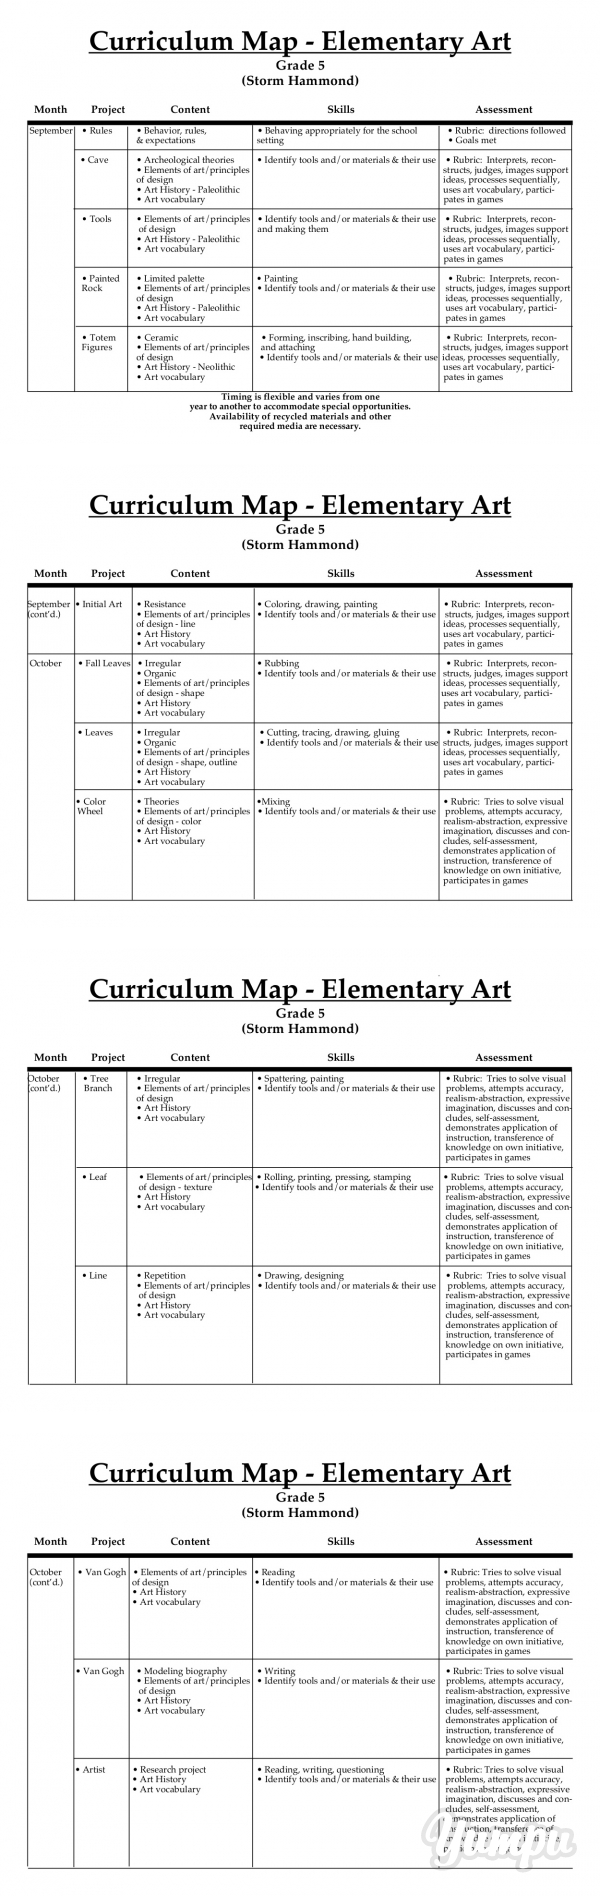 Resource mapping template 28 images constructed wetland diagram art rubric template elioleracom 8b284b9debb1e47f4ebee8dc954f99a1 art rubric template resource mapping template 28 images resource mapping template 28 images pronofoot35fo Image collections